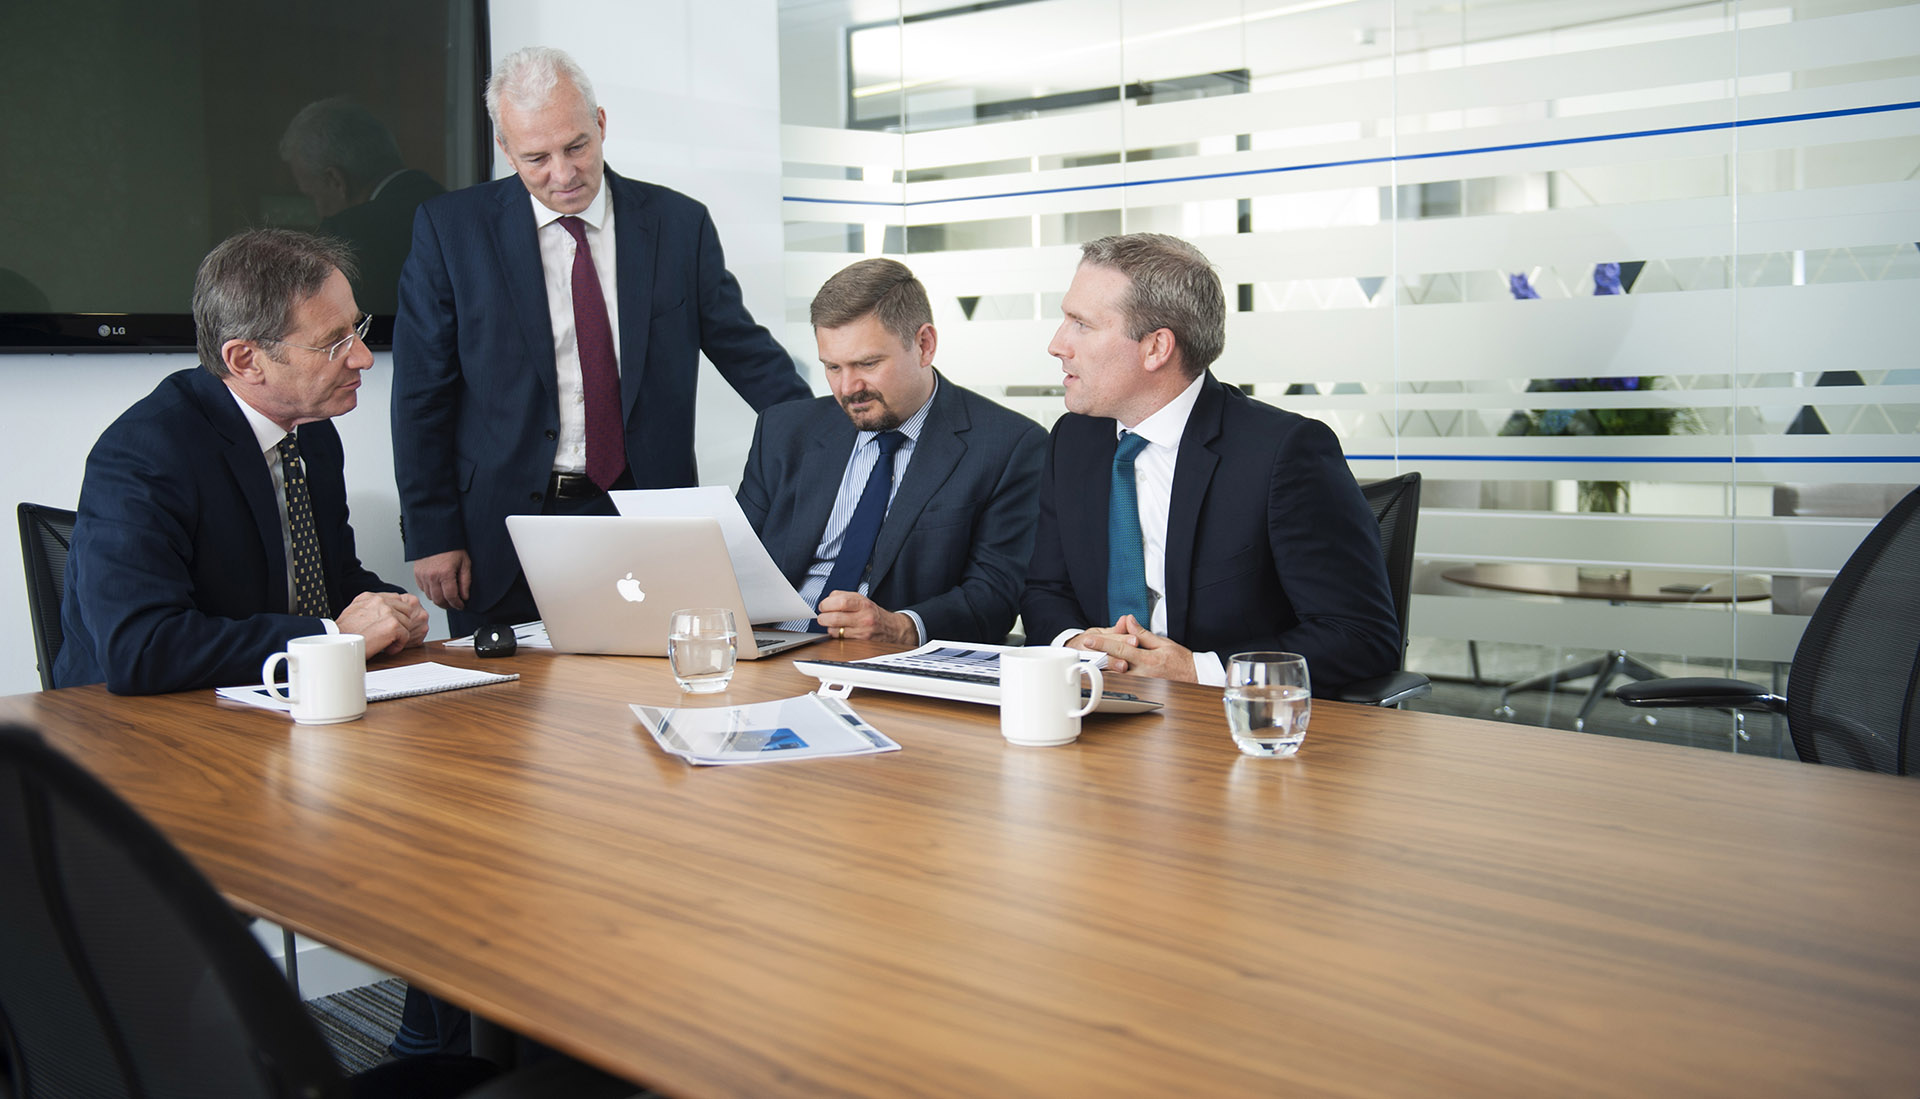 A group of businessmen conduct a meeting in a boardroom in Manchester.